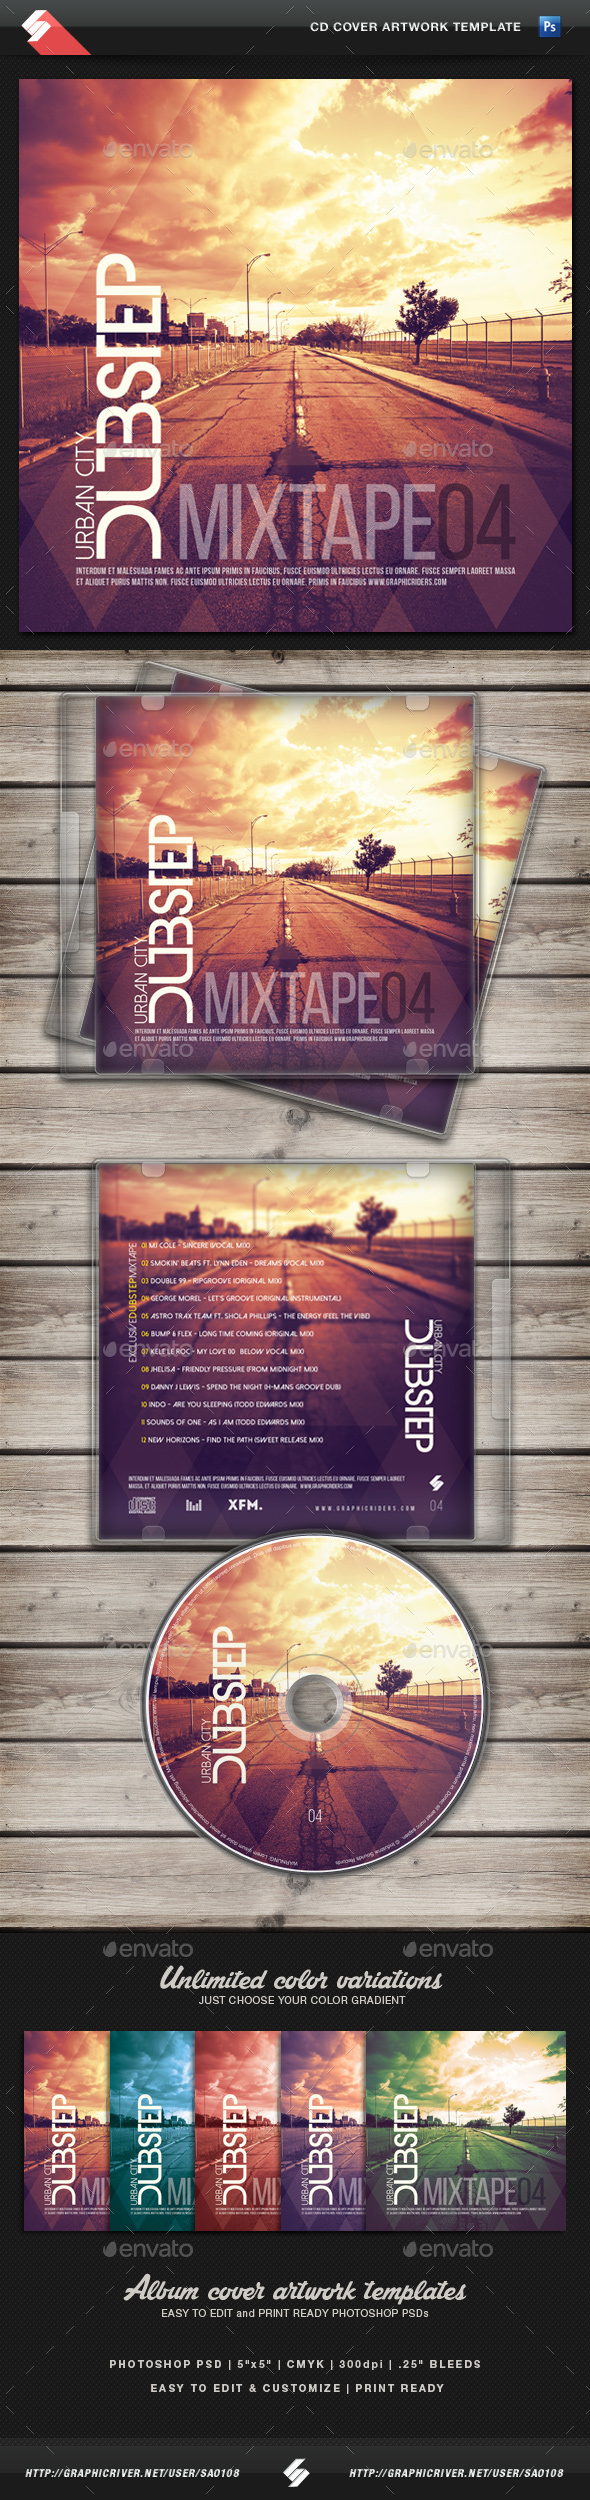 Urban City Dubstep vol.4 - CD Cover Template - CD & DVD Artwork Print Templates